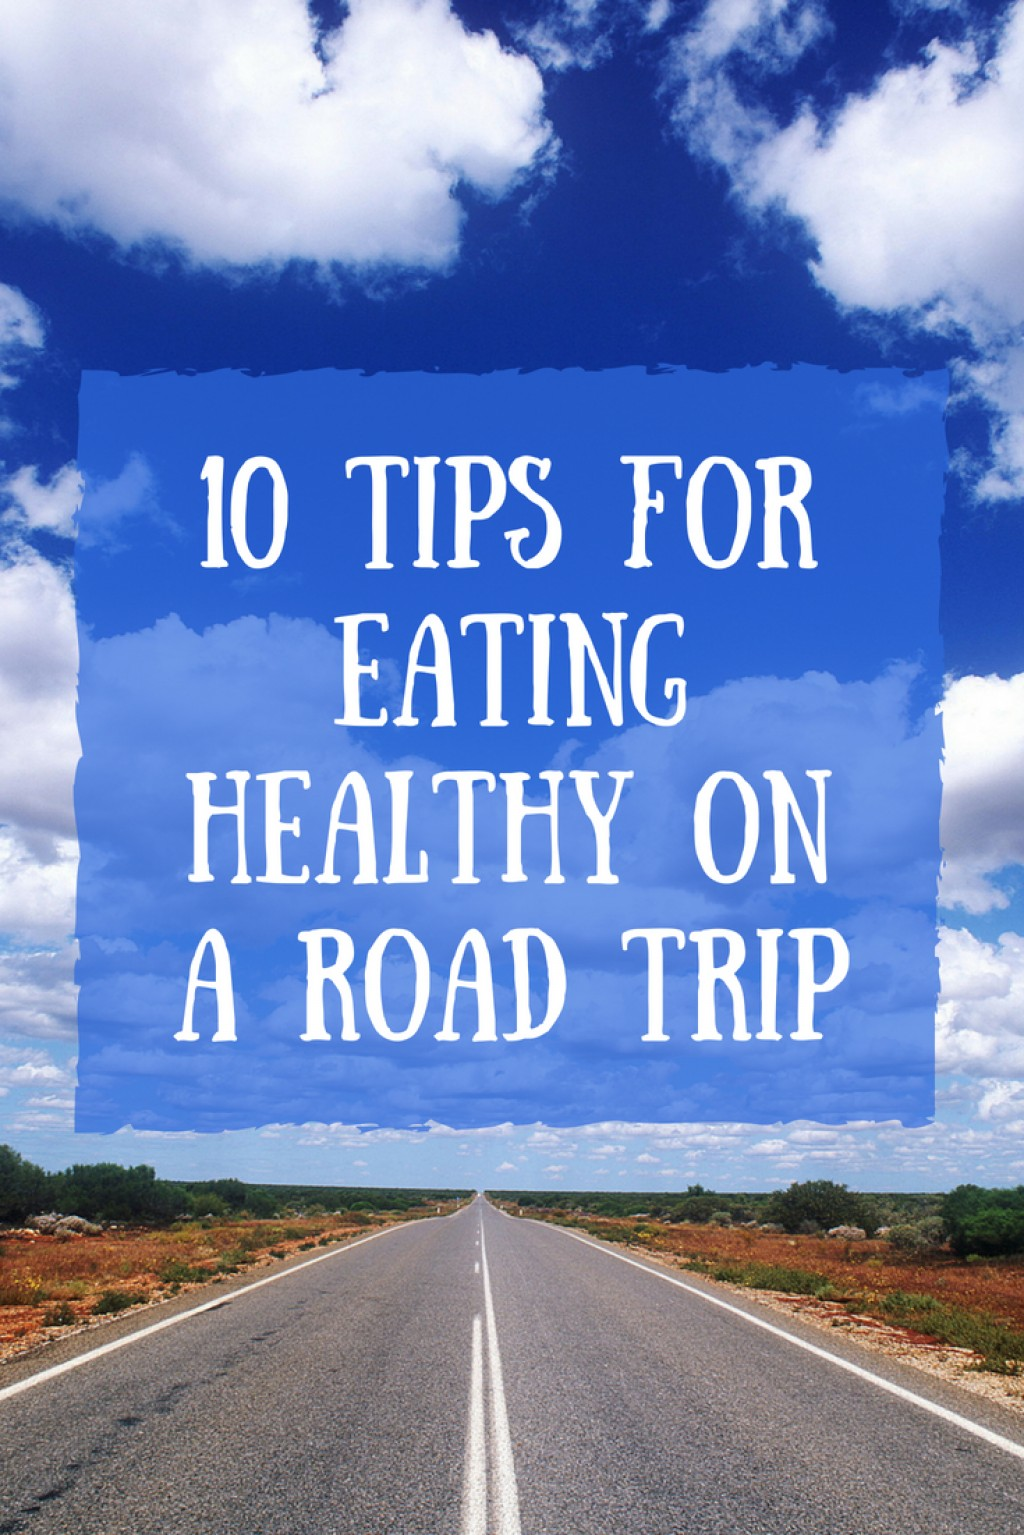 Healthy Eating Tips for Road Trips recommend